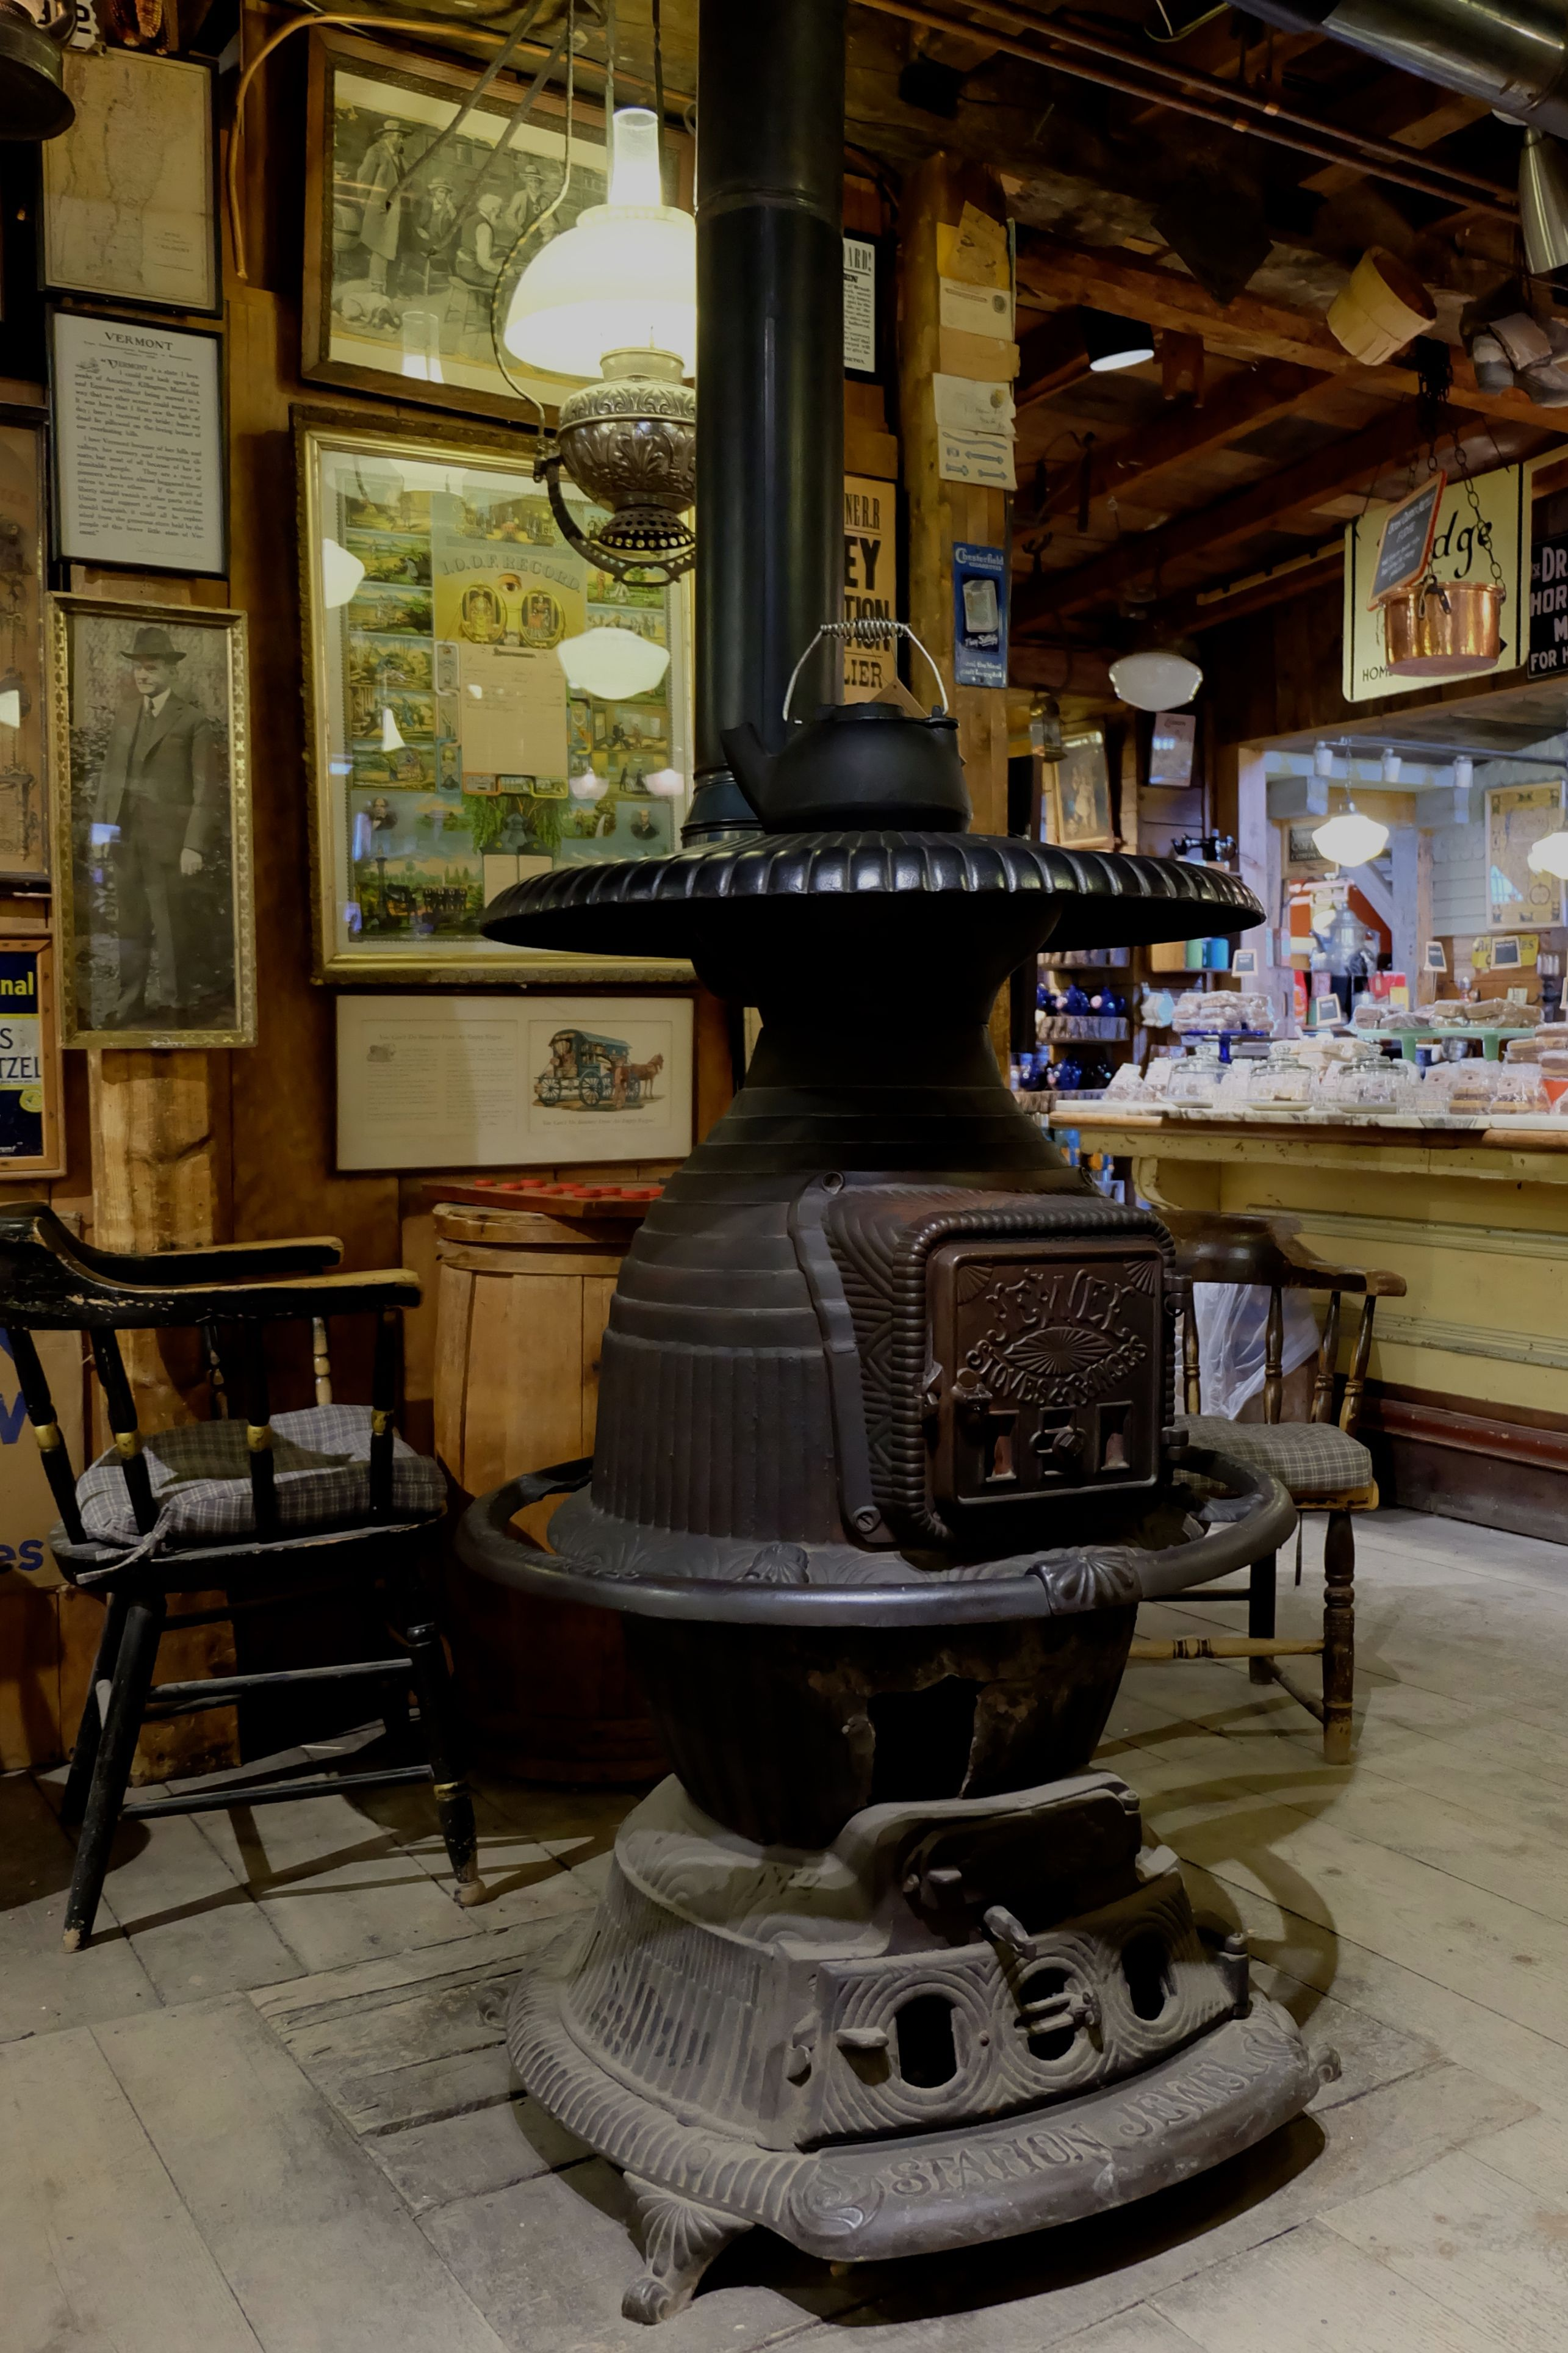 Sizes of pot belly stoves - Google Search | Antique stoves ...